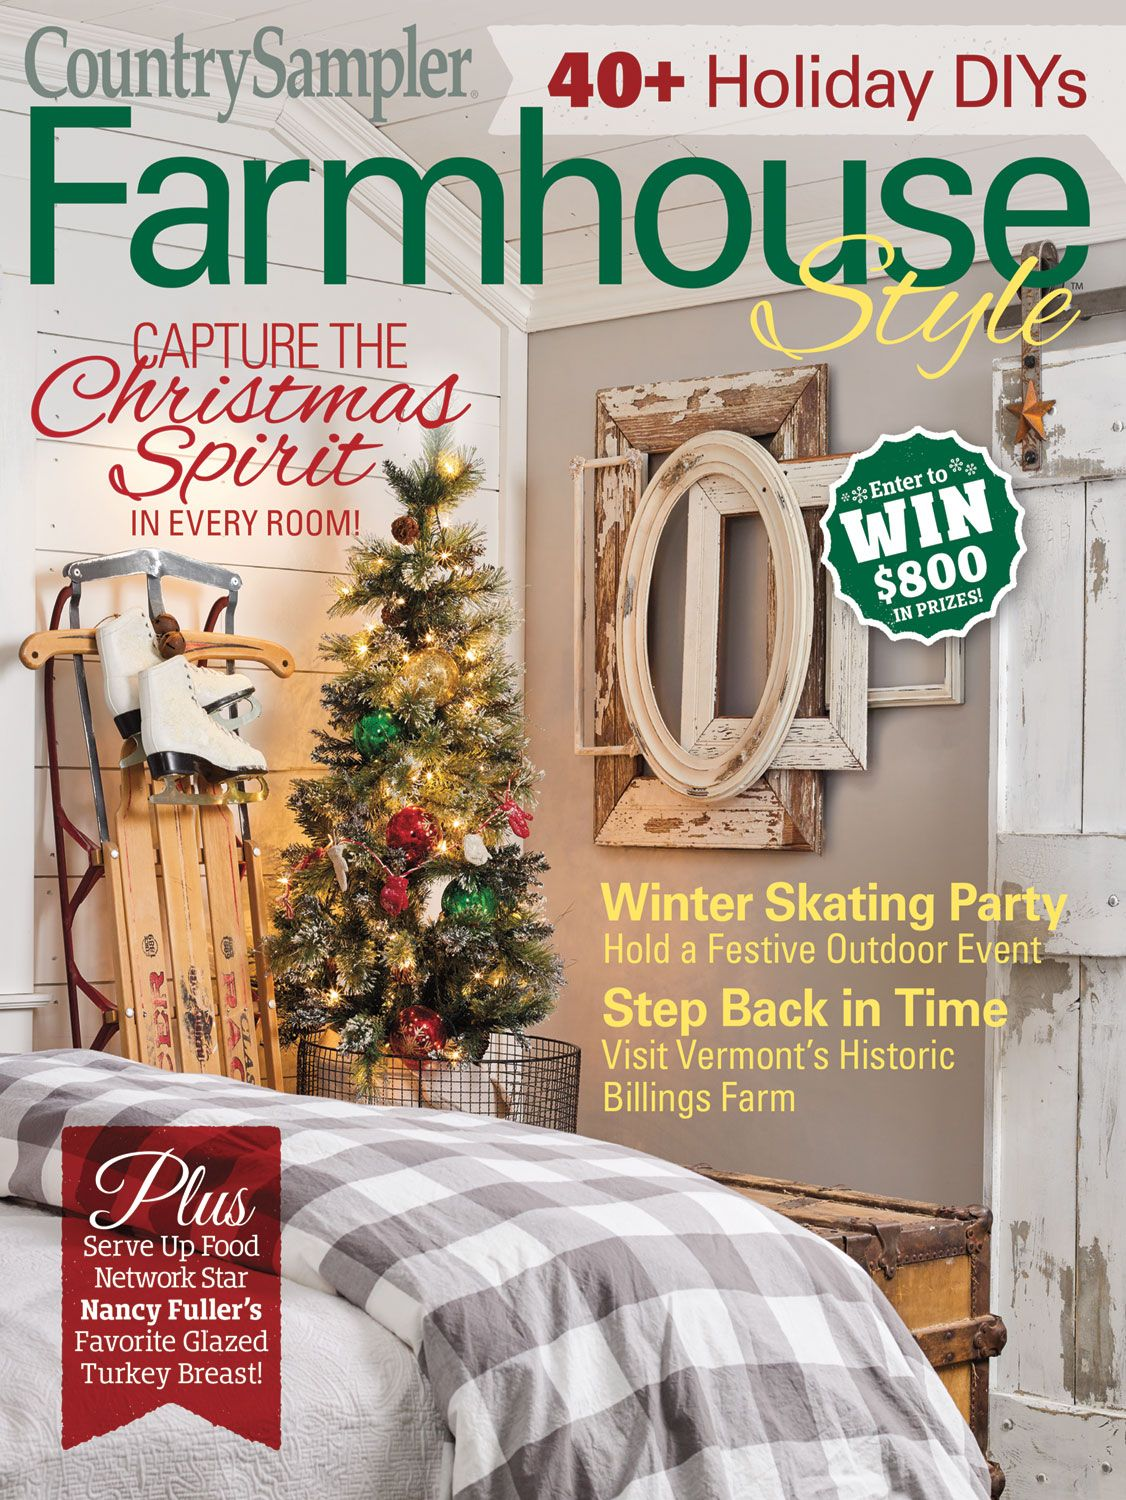 The holidays are heading this way, and our Farmhouse Style